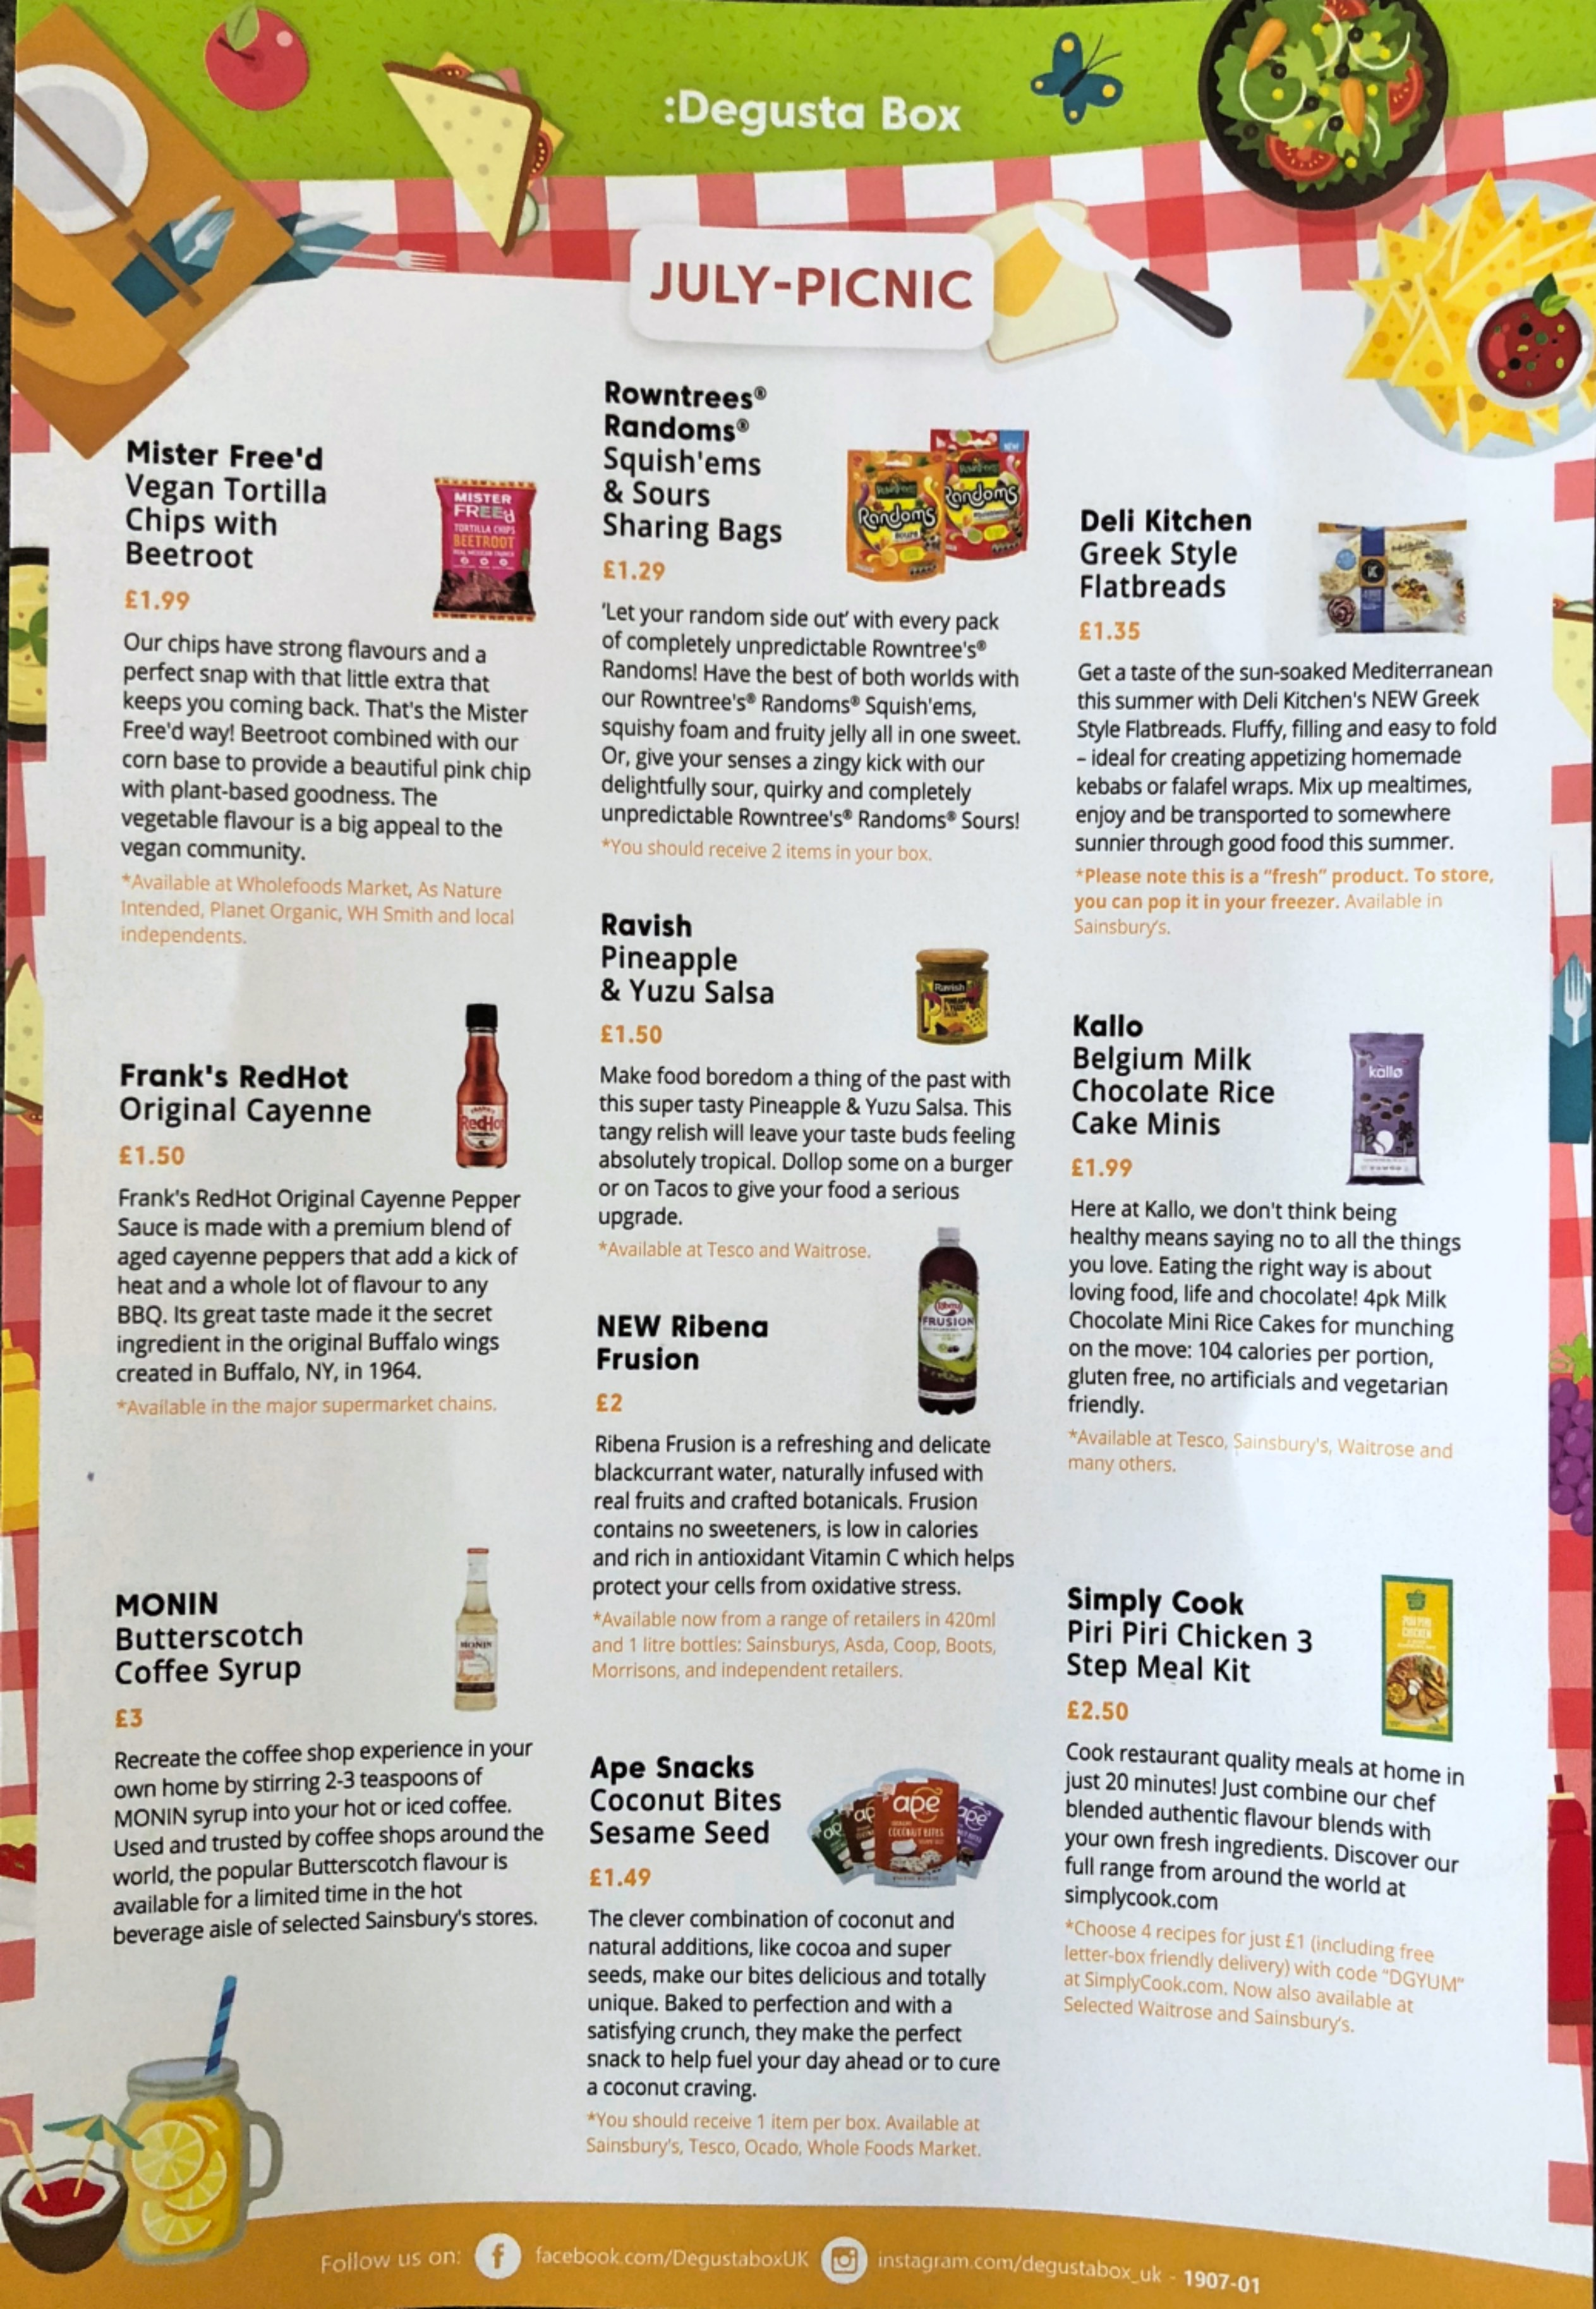 Degustabox July Review - YourFoodFantasy.com